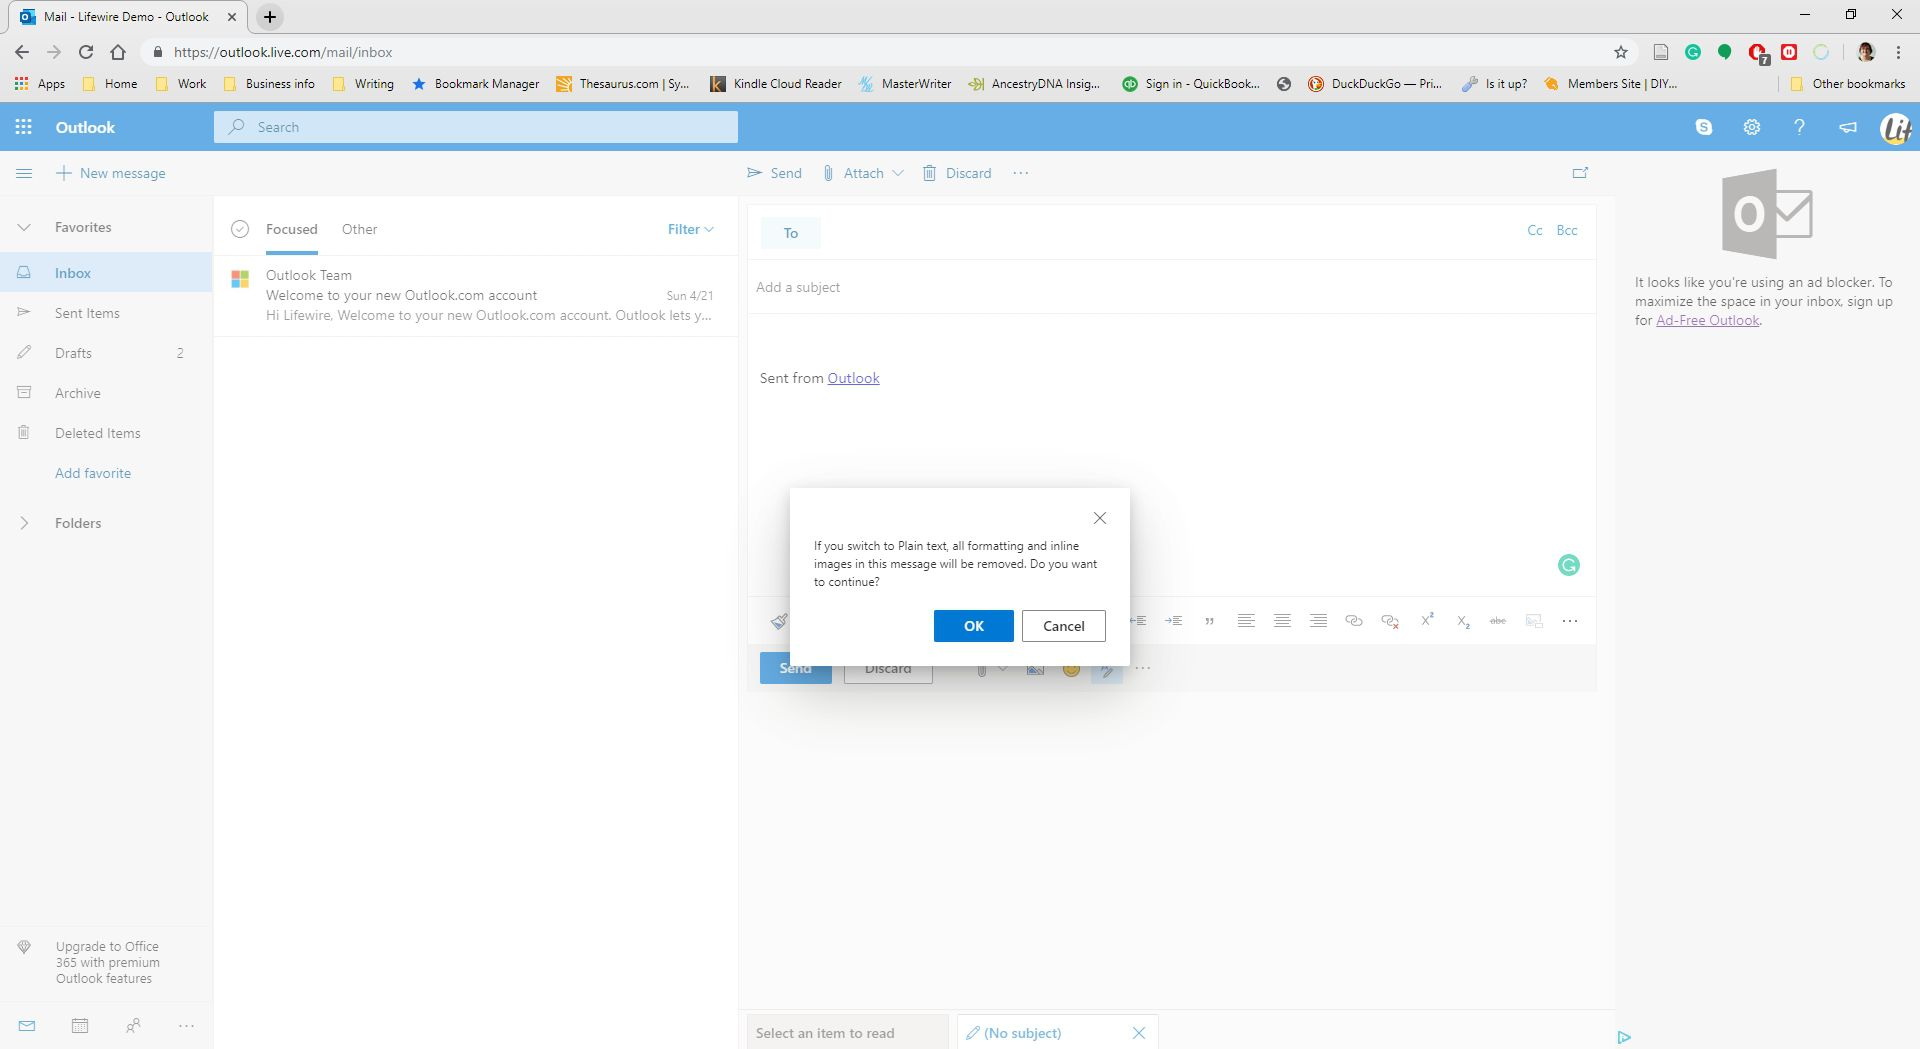 A confirmation about switching to plain text in Outlook.com.